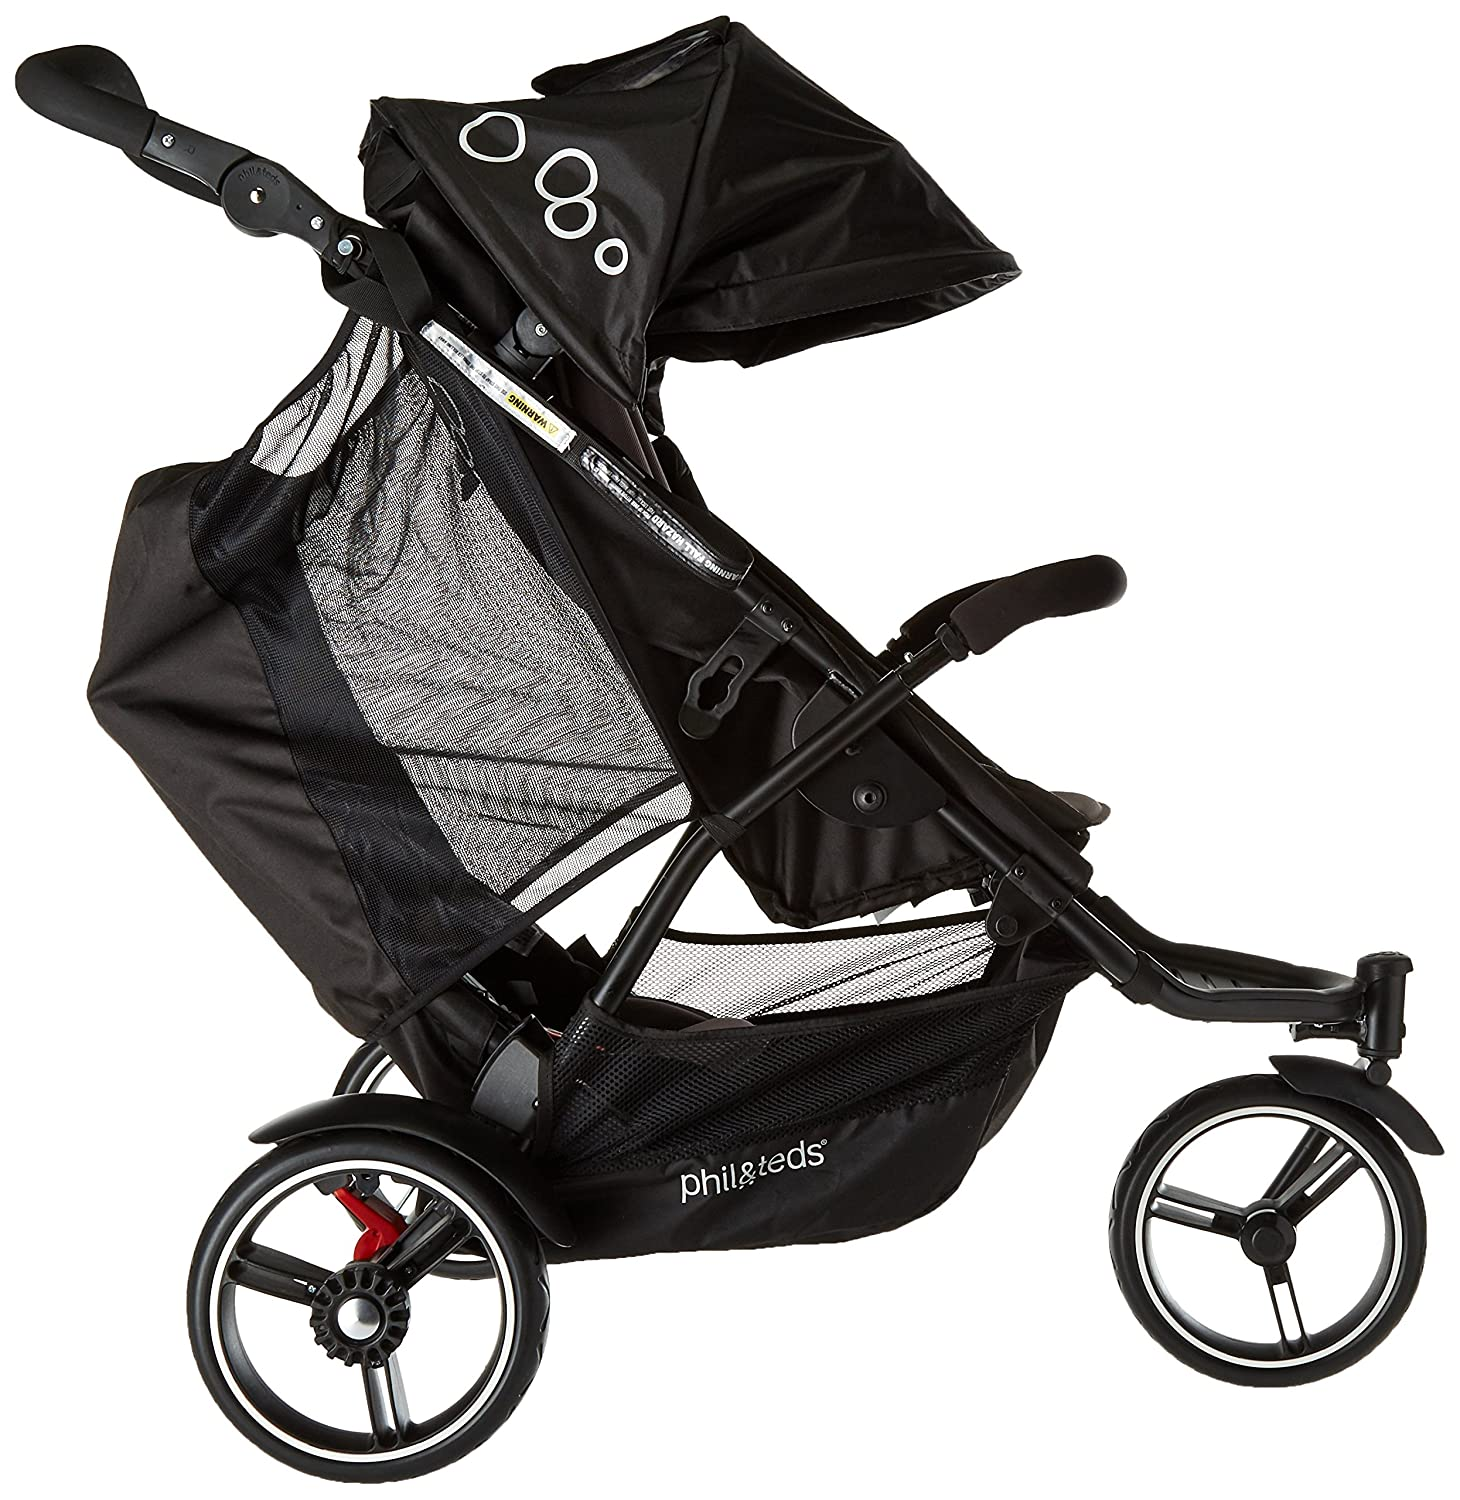 Compact Frame with Full Size Seat Compact Newborn Ready phil/&teds Dot Compact Inline City Stroller with Double Kit Puncture Proof Tires One Hand Fold Parent Facing Seat Included Graphite